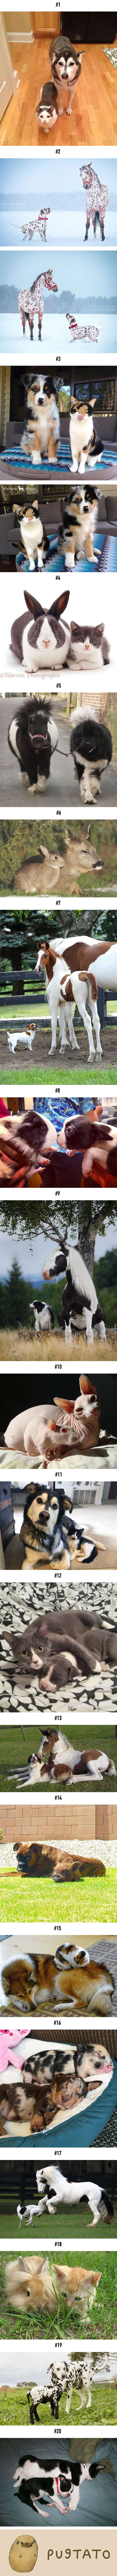 20 animal brothers from other mothers